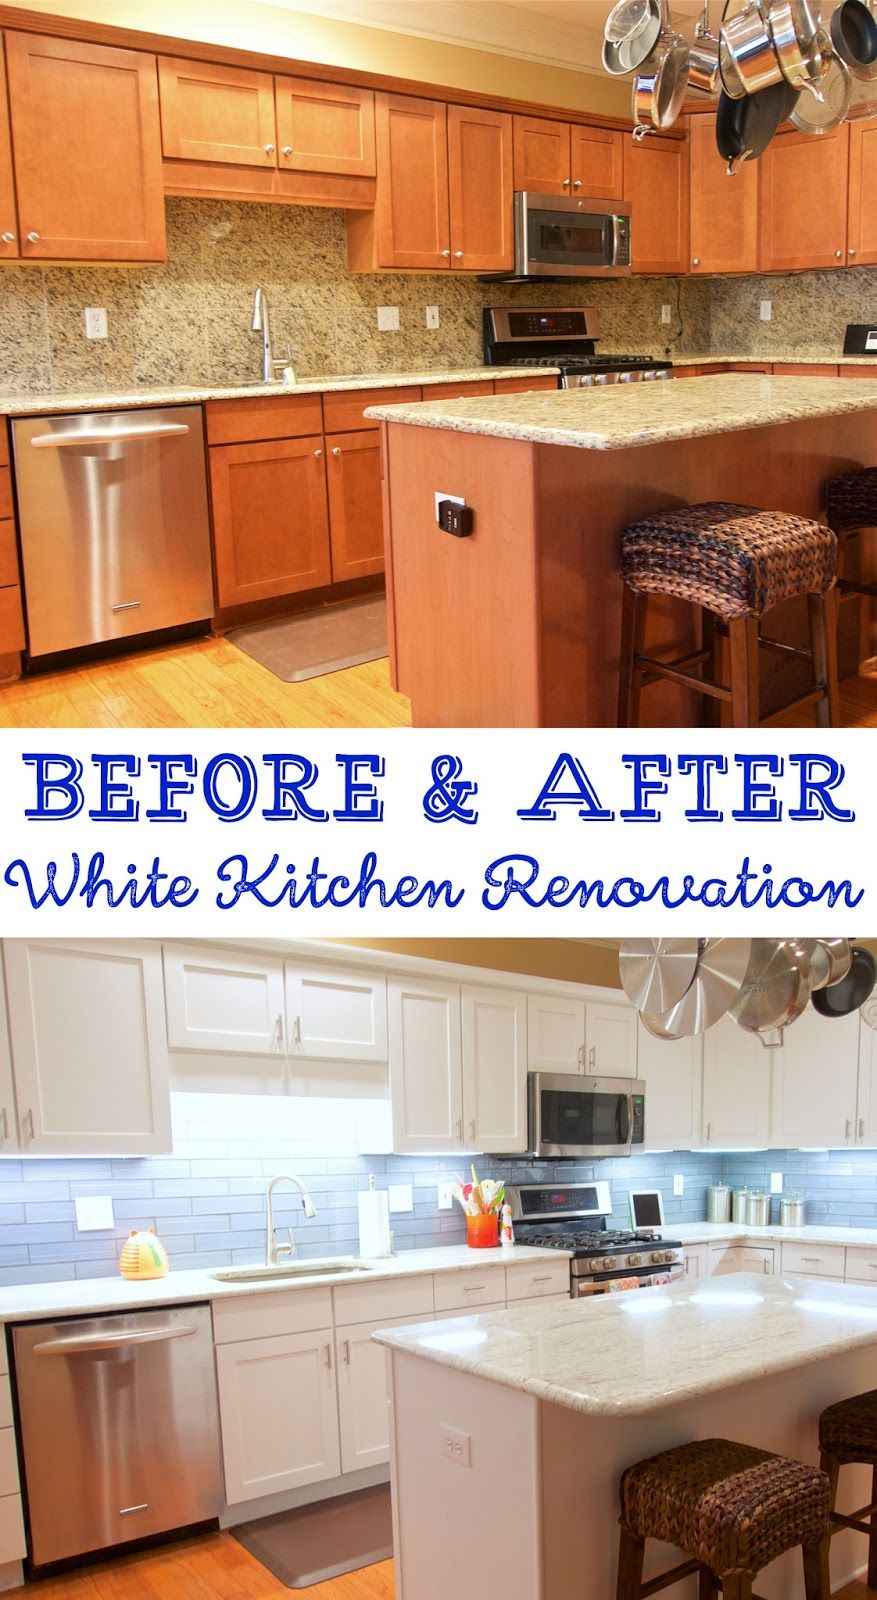 Before And After White Kitchen Renovation Painted Cabinets River White Granite Datile Encha White Kitchen Renovation Kitchen Renovation Diy Kitchen Remodel